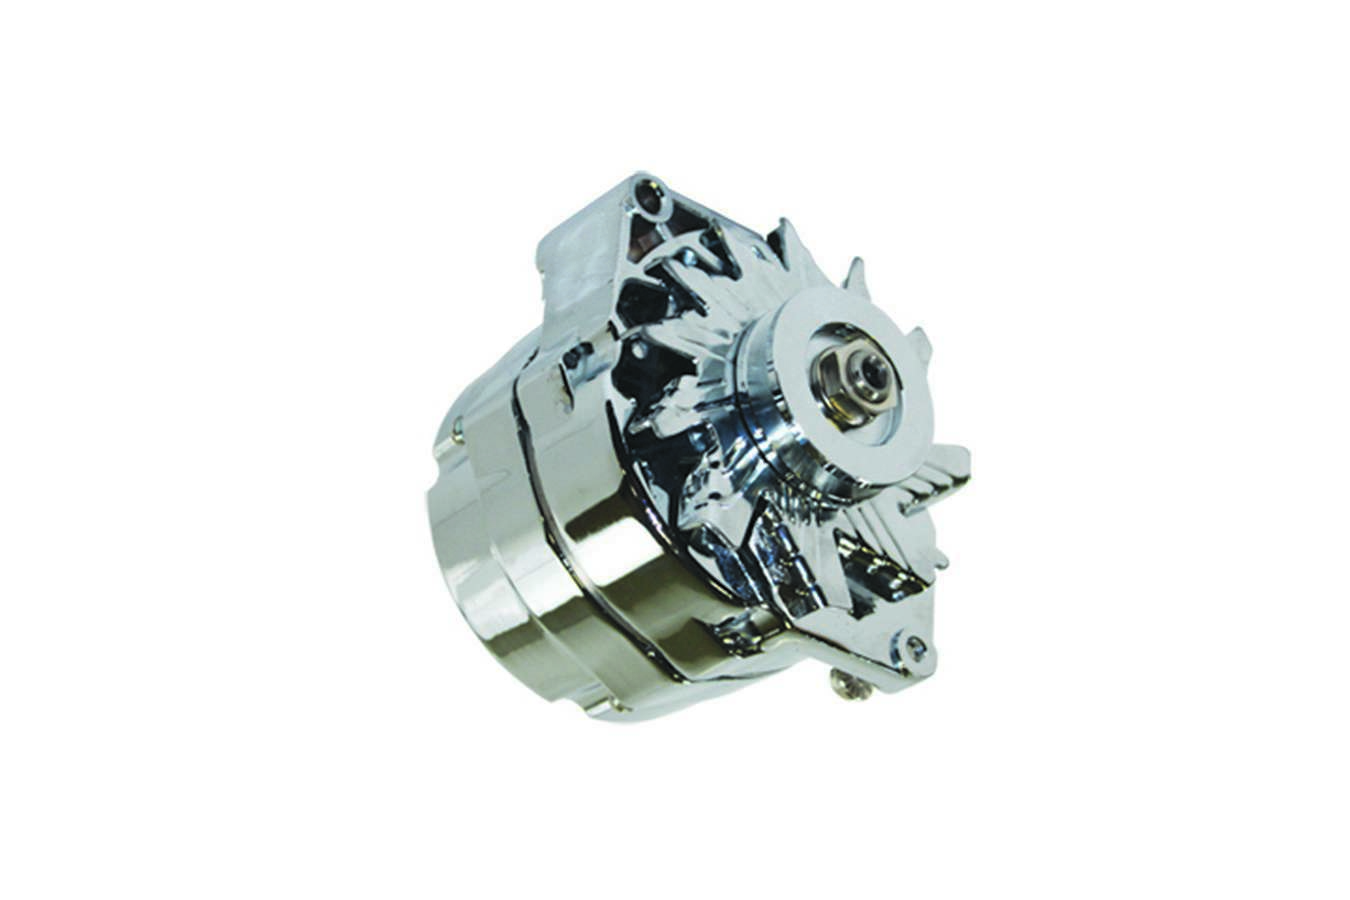 Specialty Products 3116 Alternator, 110 amp, 12V, 1 / 3-Wire, Single V-Belt Pulley, Chrome, Ford 1962-85, Each